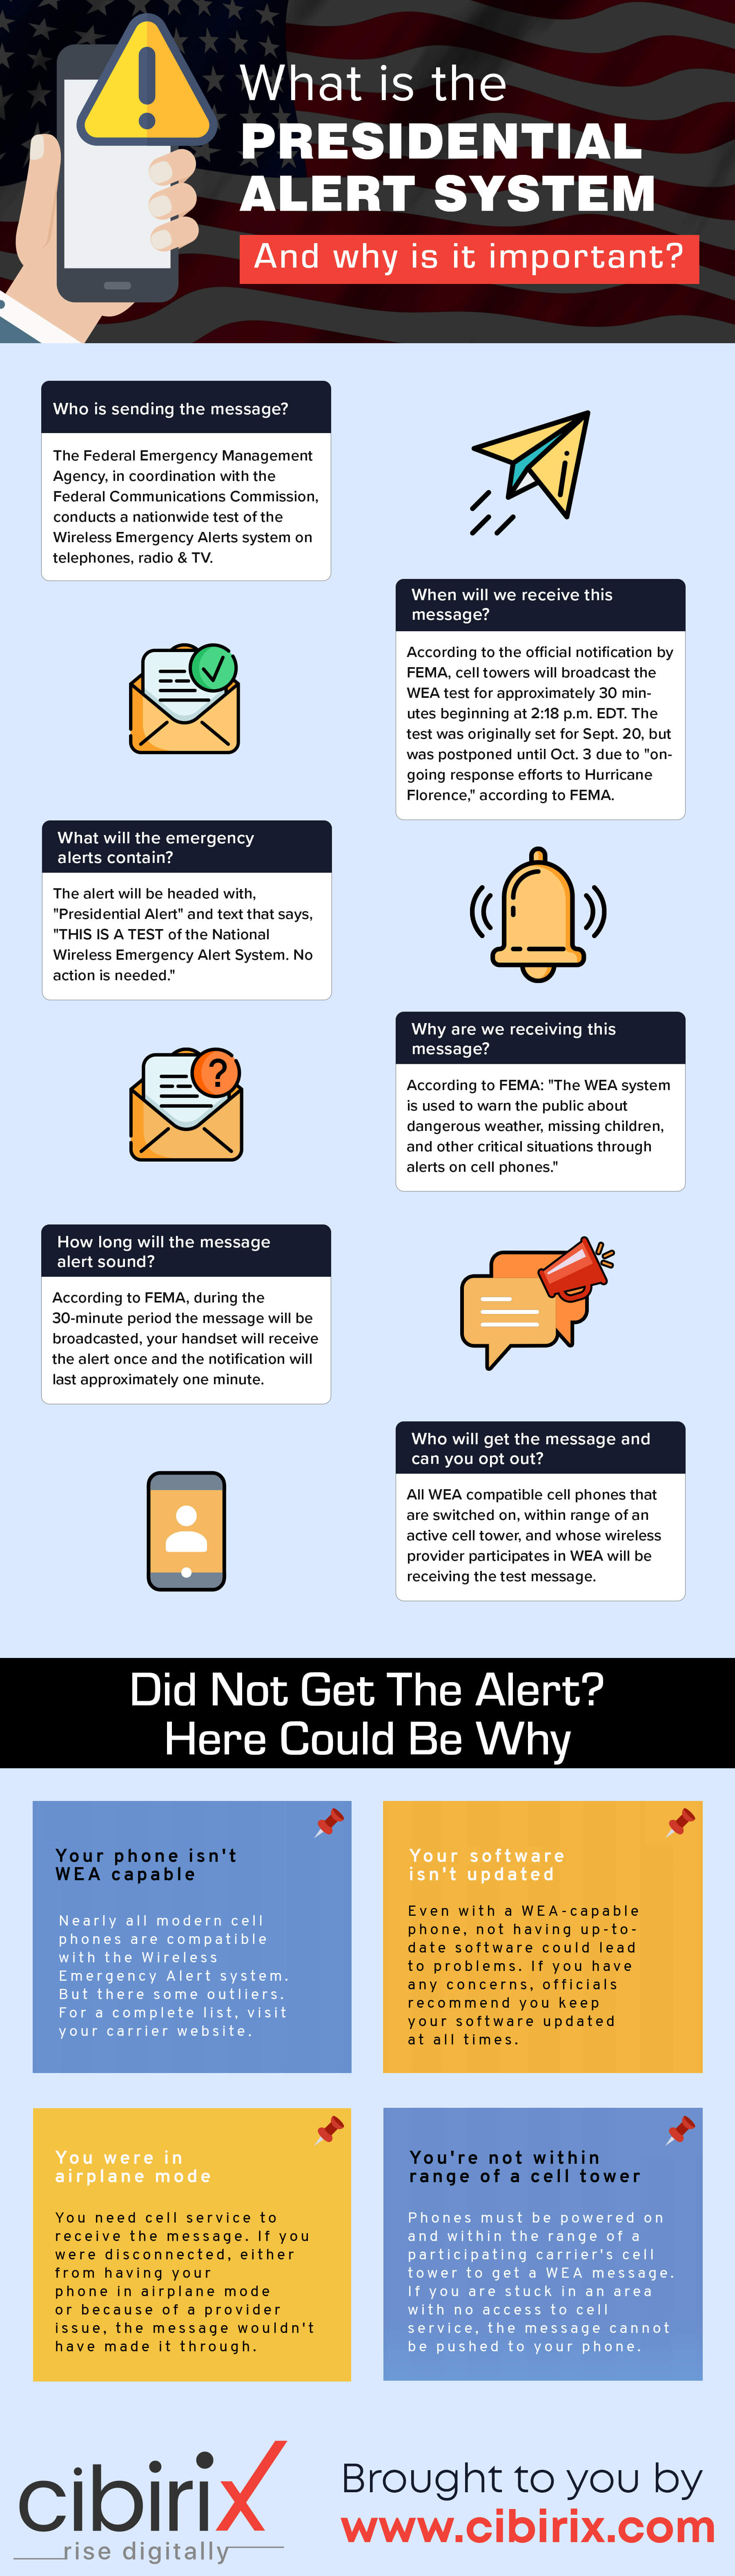 what-is-the-presidential-alert-system-infographic-plaza